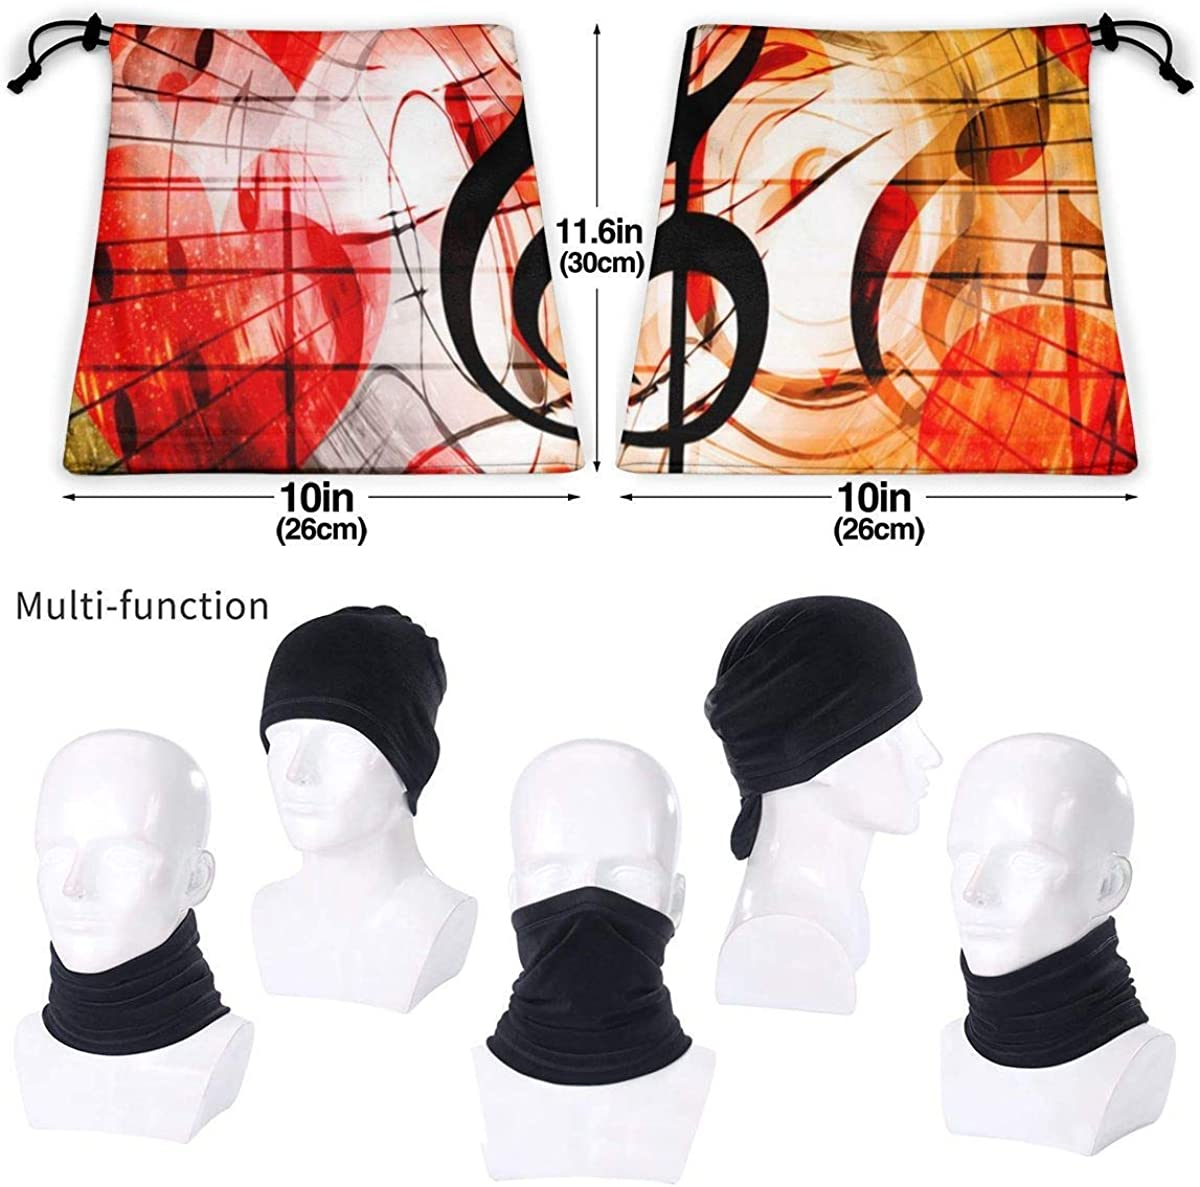 Microfiber Neck Warmer Hearts Music Notes Music Clefs Neck Gaiter Tube Ear Warmer Headband Scarf Face Mask Balaclava Black